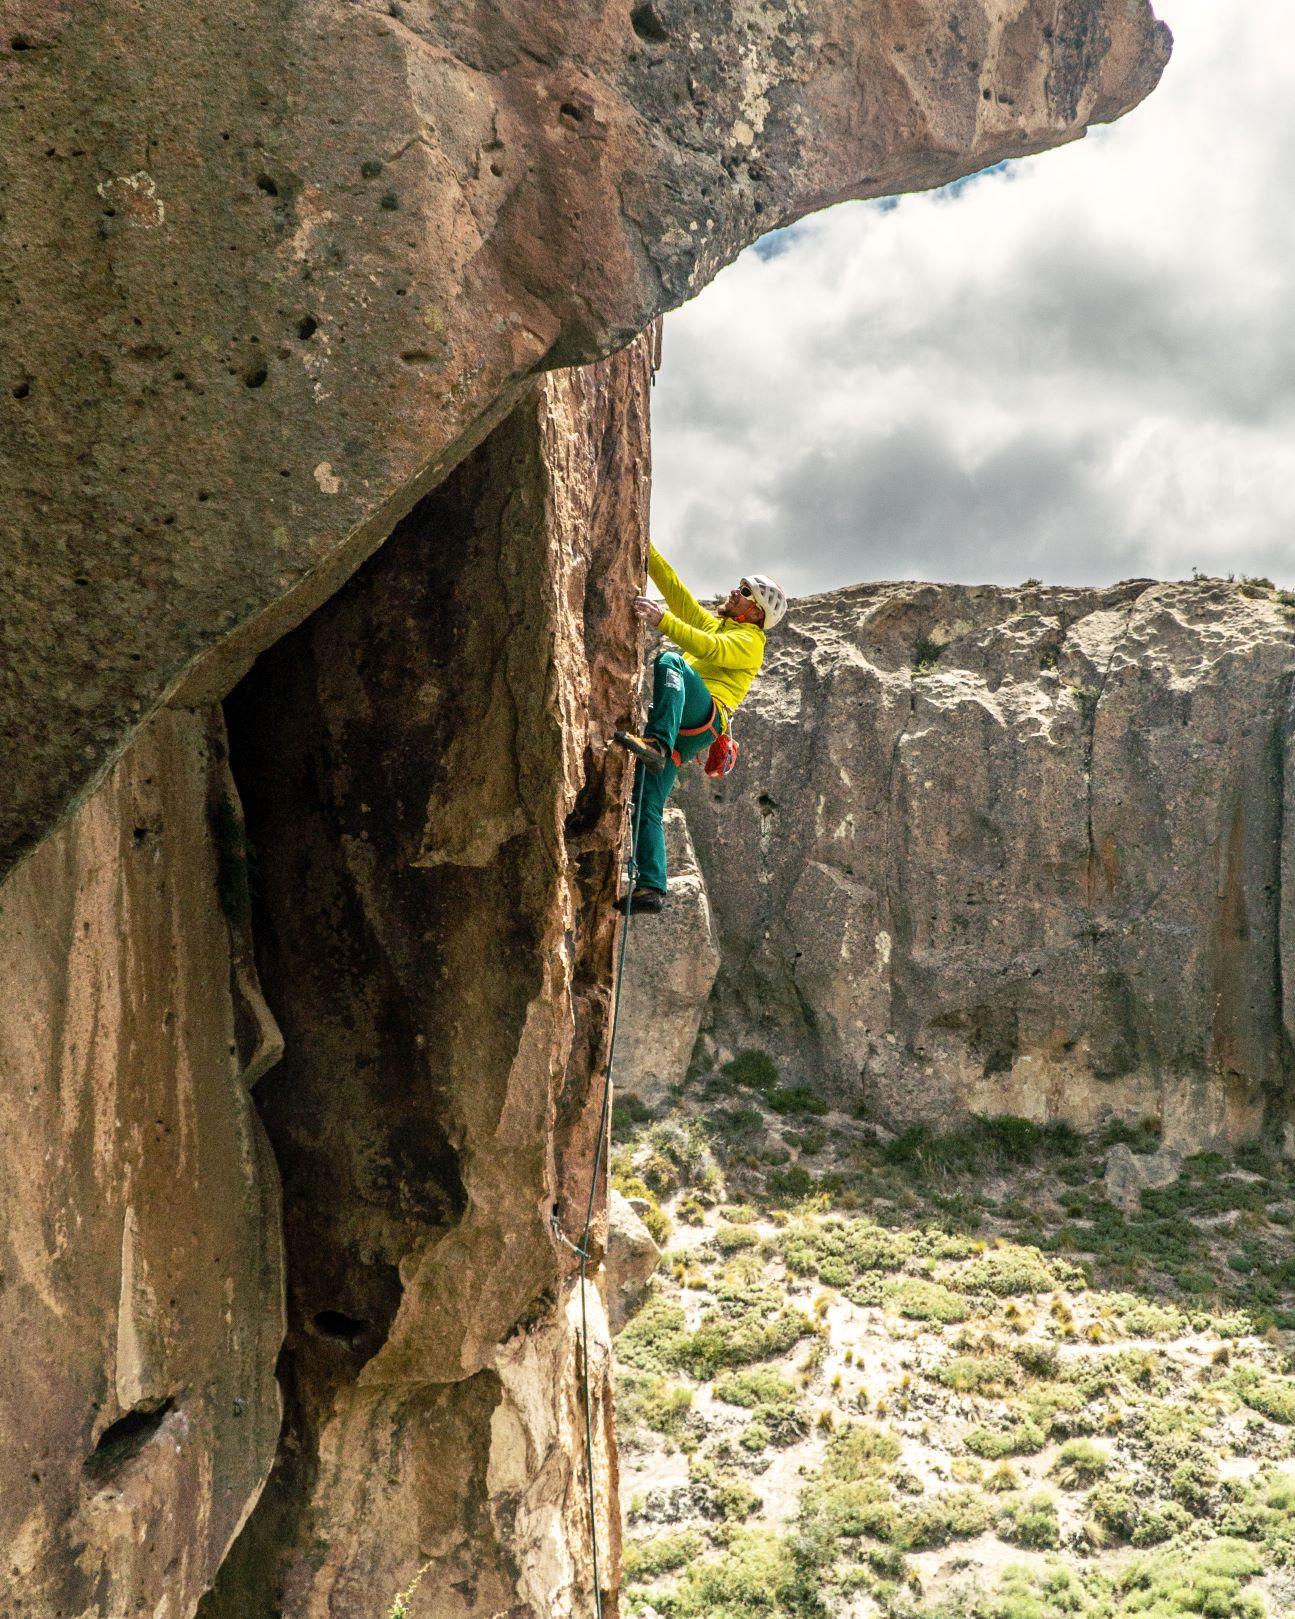 A rock climber in Arroyo Chacay, Northern Patagonia